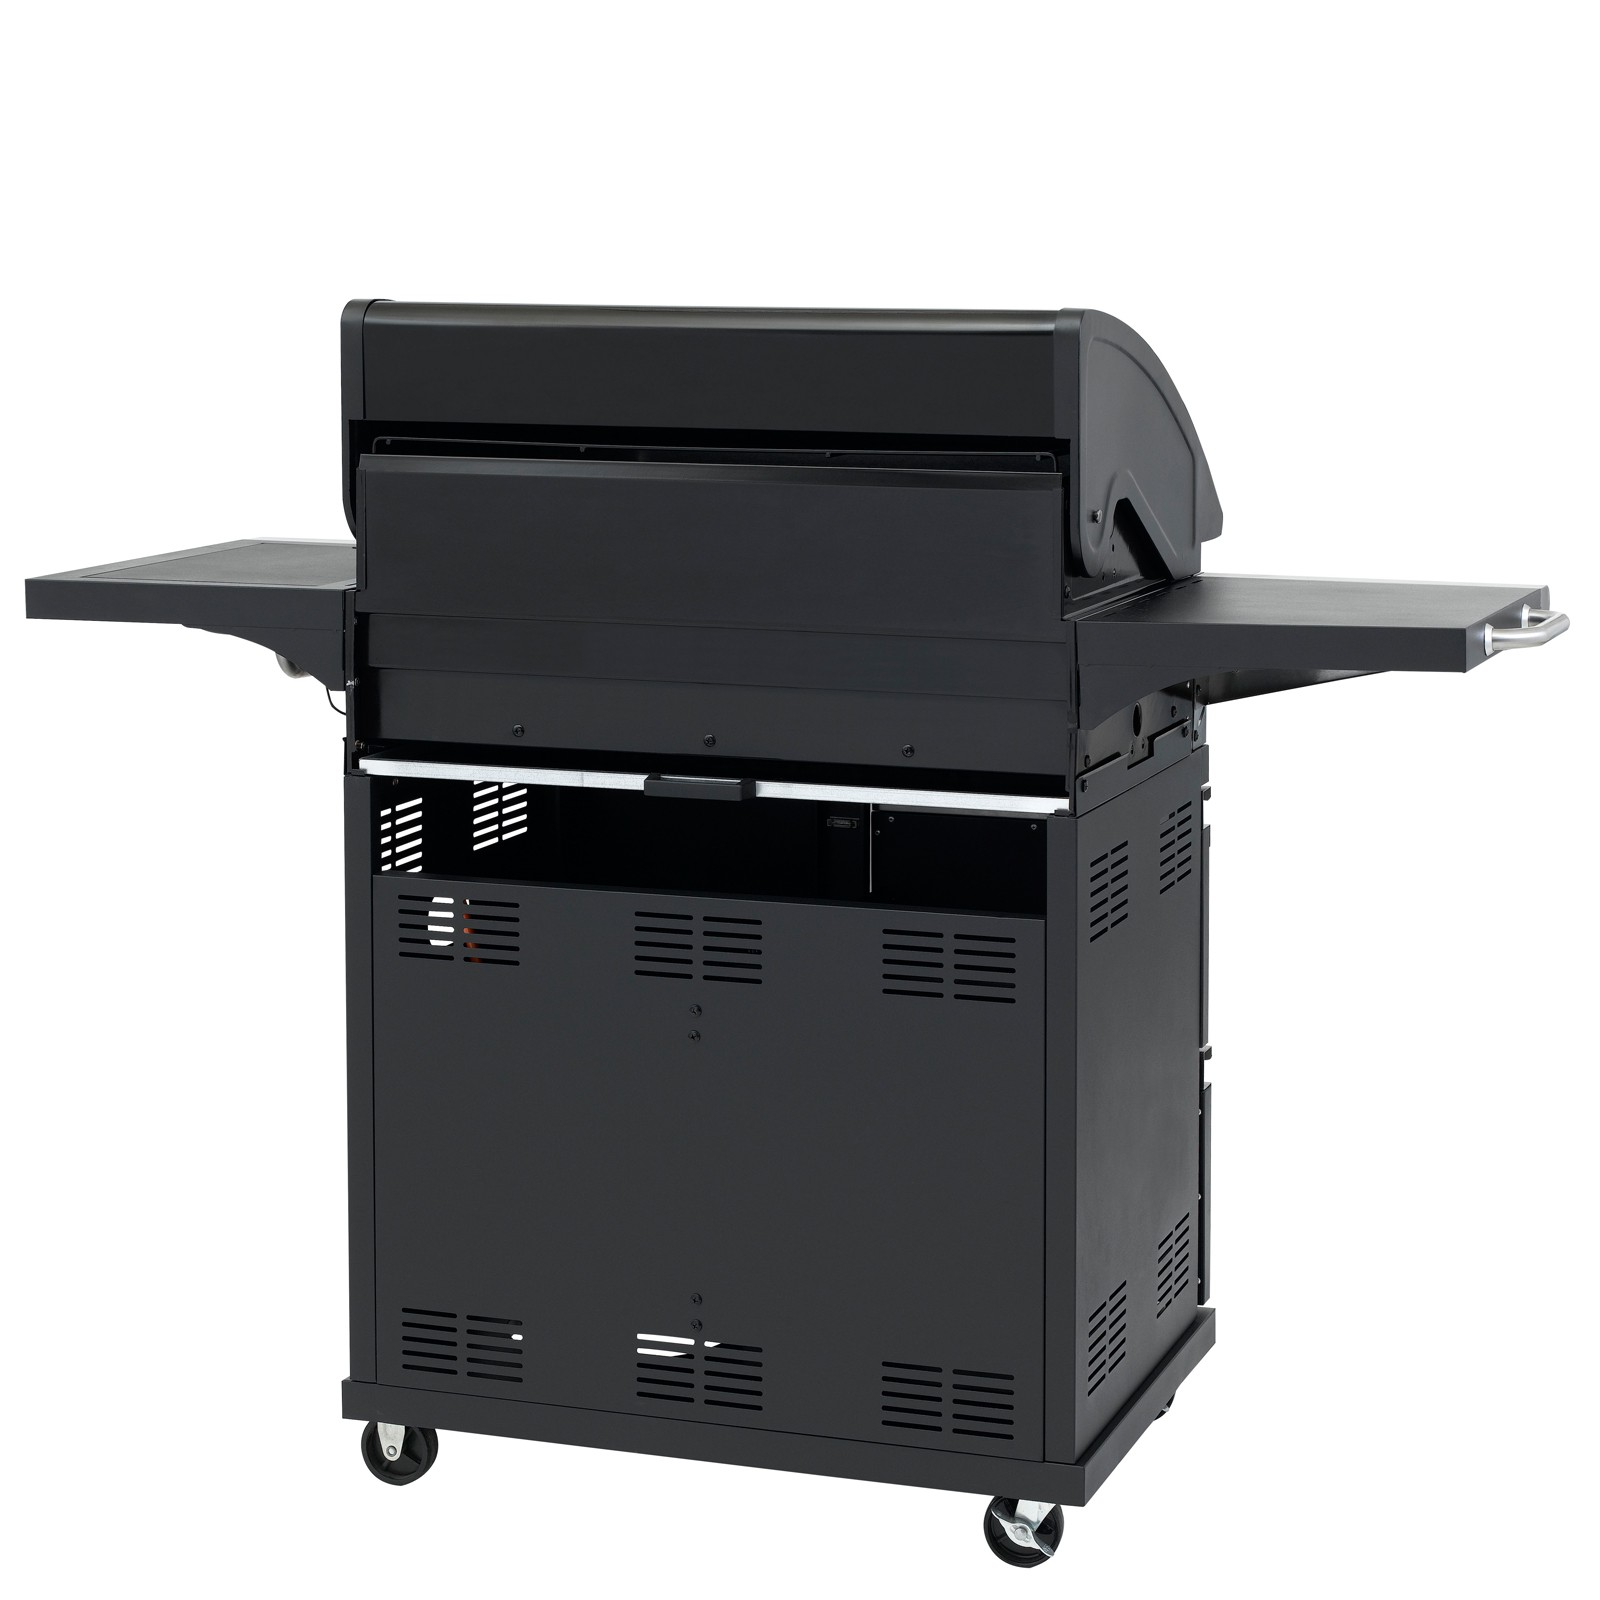 tepro gasgrill bbq grillwagen 4 edelstahl brenner gas barbecue grill fairmont ebay. Black Bedroom Furniture Sets. Home Design Ideas